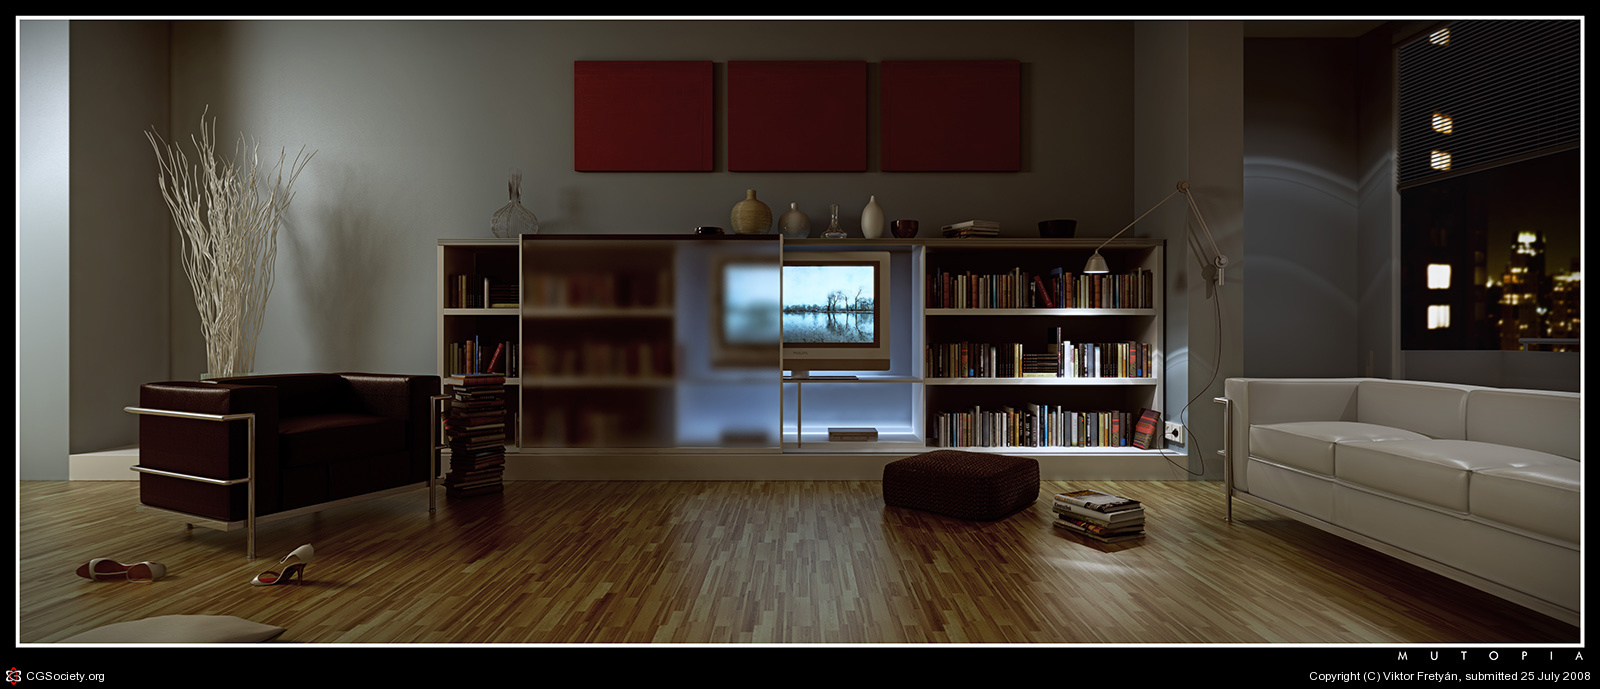 50 amazing architectural renders cinema for Living room cinema 4d